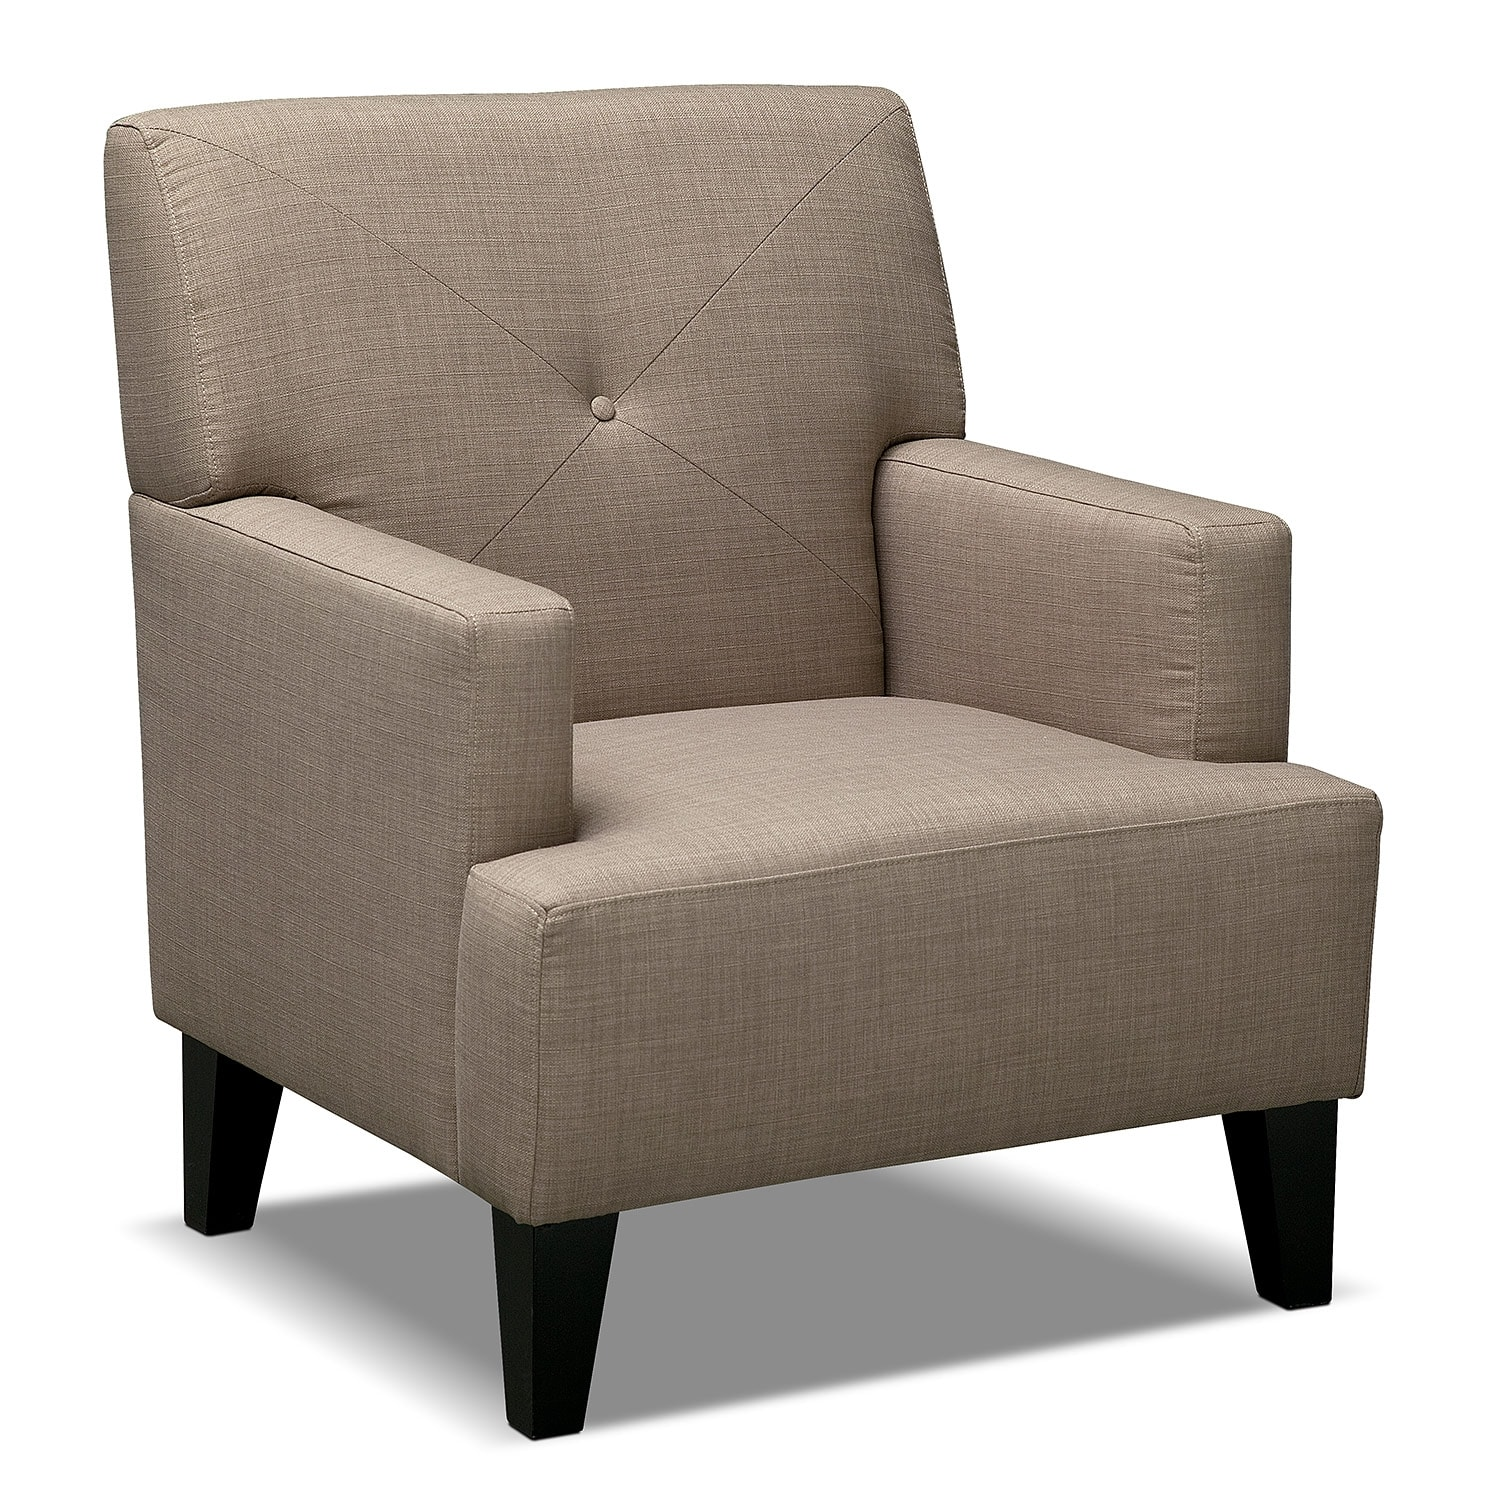 Avalon accent chair wheat value city furniture for Furniture furniture